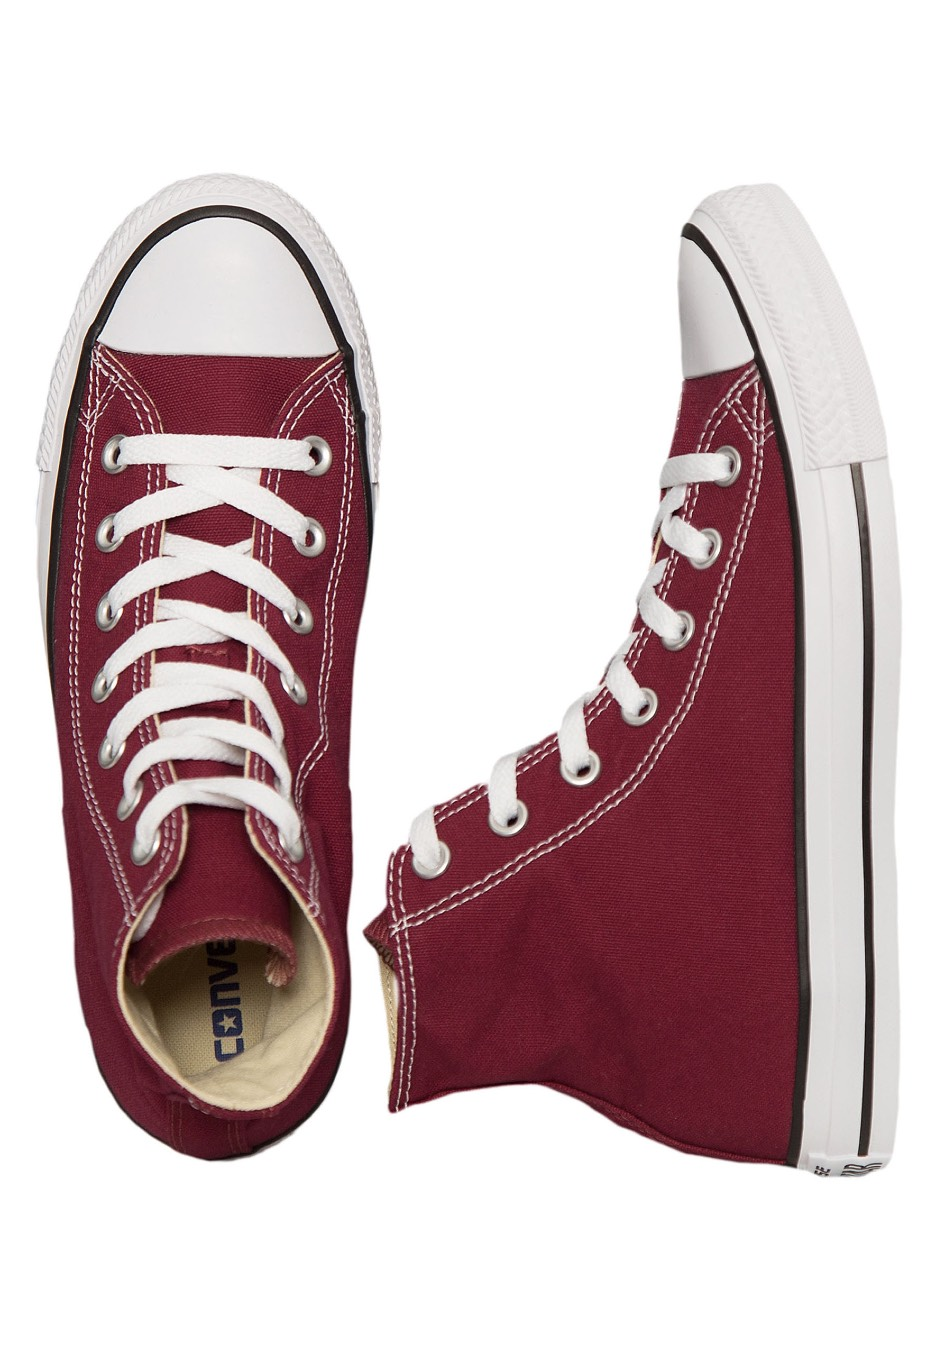 e25915679f31 Converse - Chuck Taylor All Star Hi Maroon - Girl Shoes - Impericon.com UK